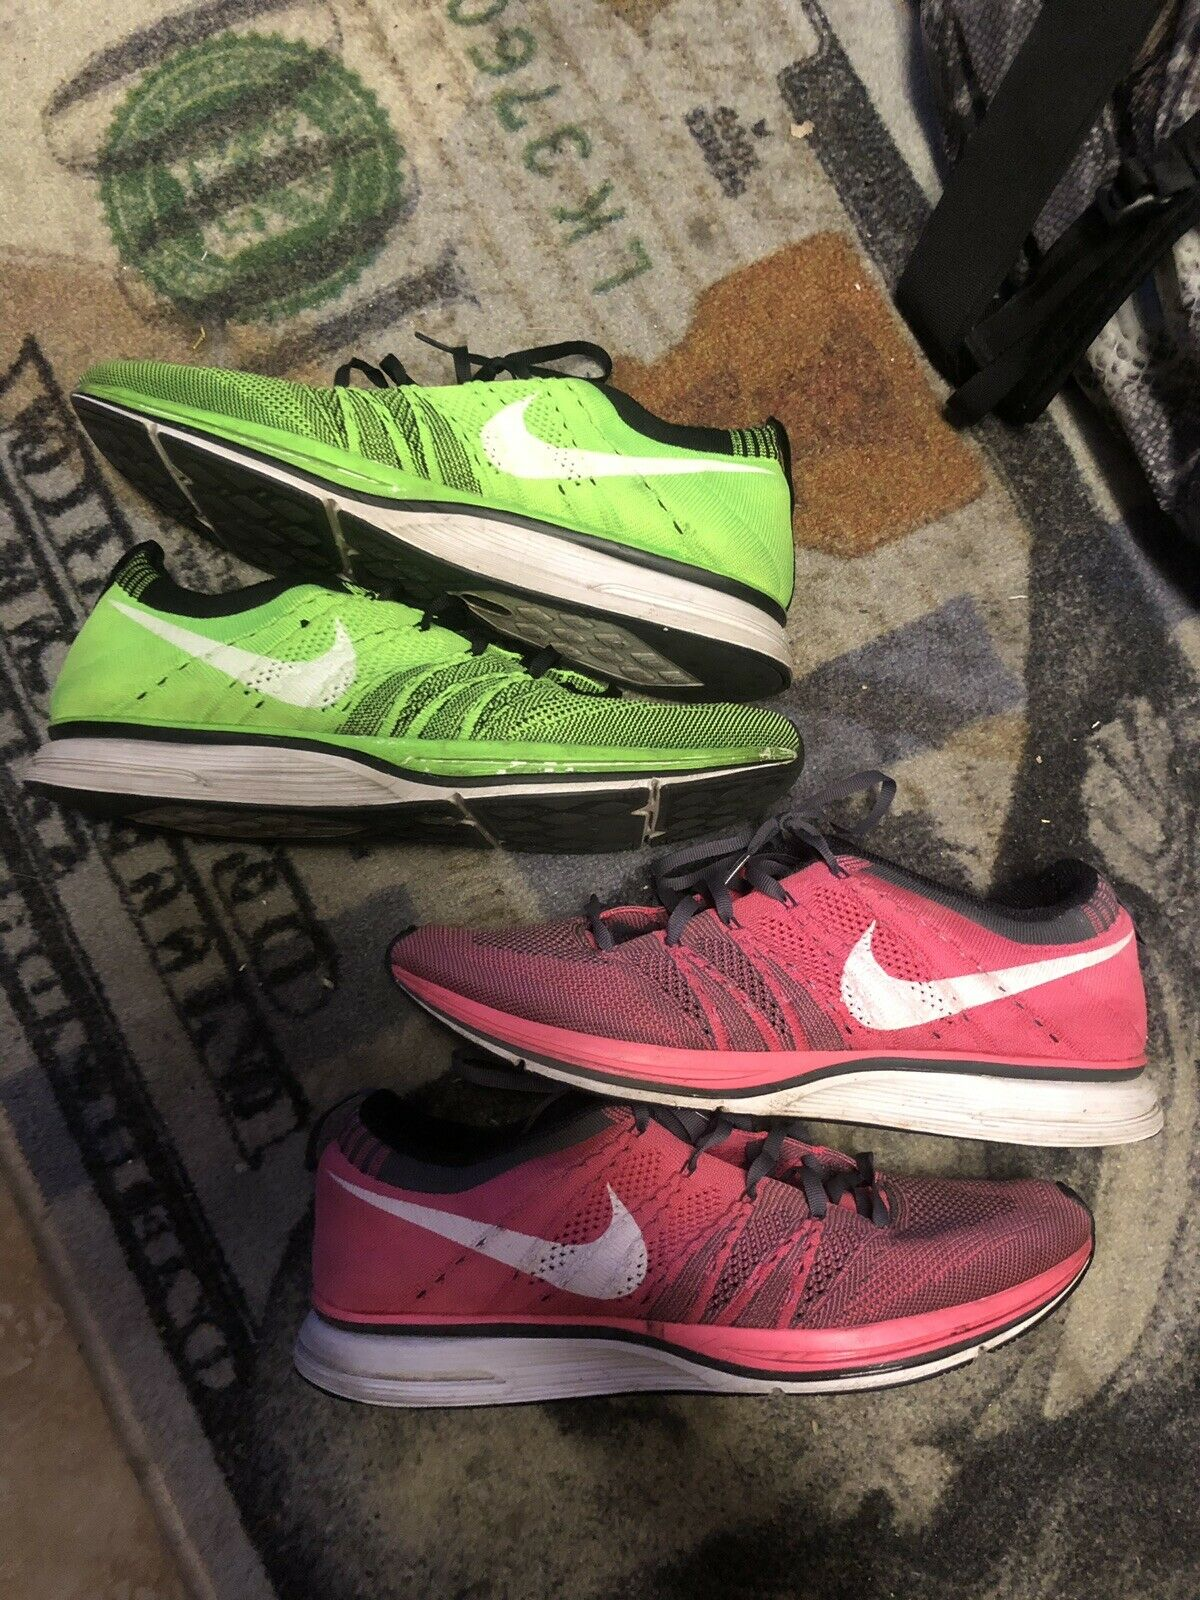 Nike Flyknit Trainer Electric Green & Pink Sz 10.5